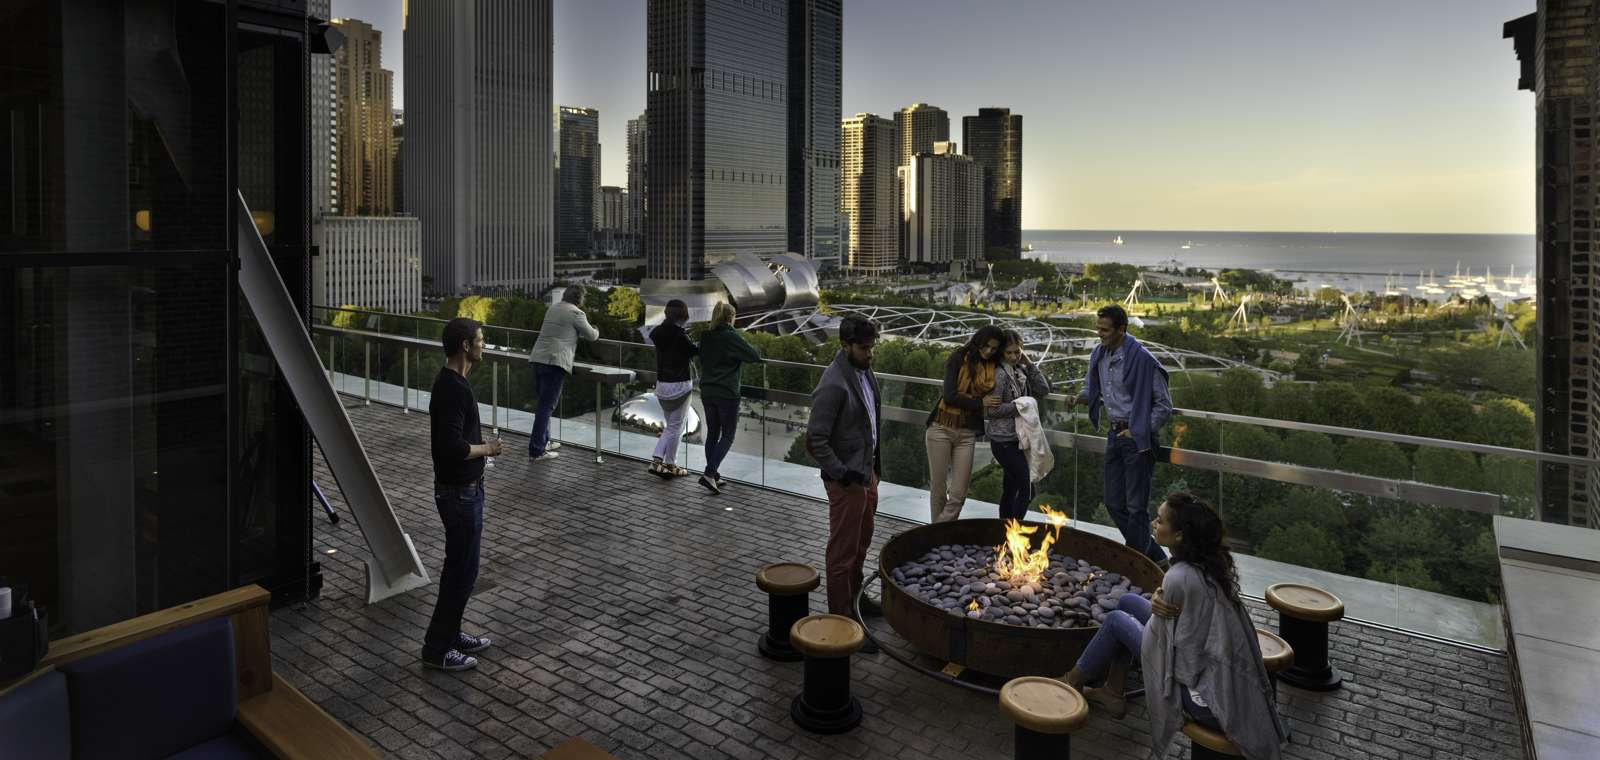 Chicago Athletic Association_Lifestyle_Cindy's_Fire pit_Thomas Shelby